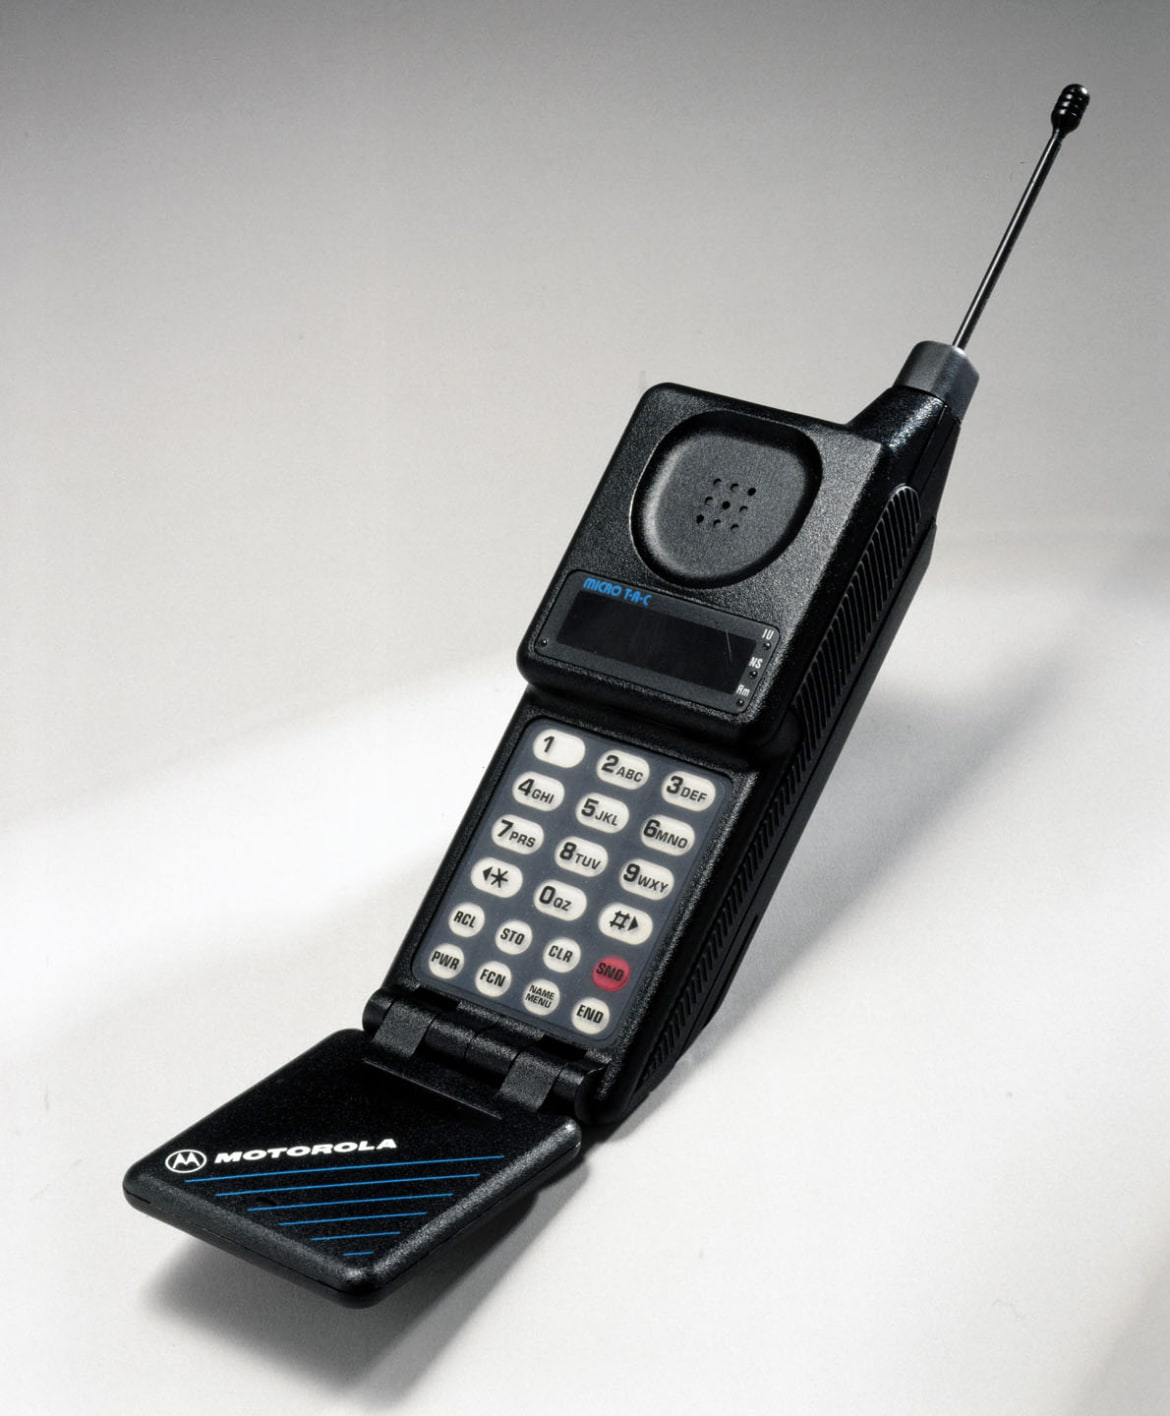 first motorola cell phone 1973. science first motorola cell phone 1973 c